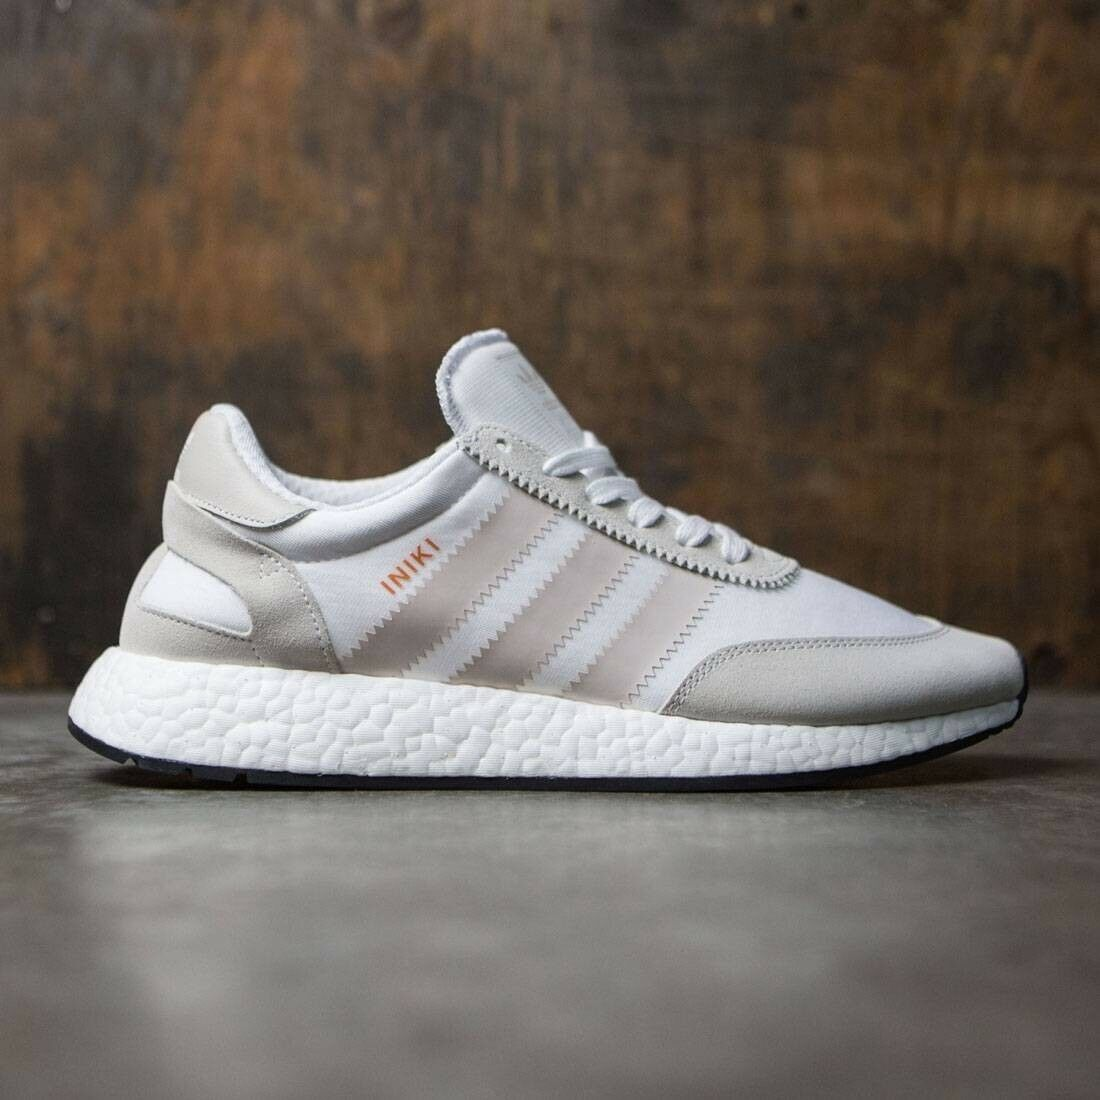 Adidas Iniki Runner Boost White Pearl Grey Size 12 VNDS NMD Ultra Yeezy Boost